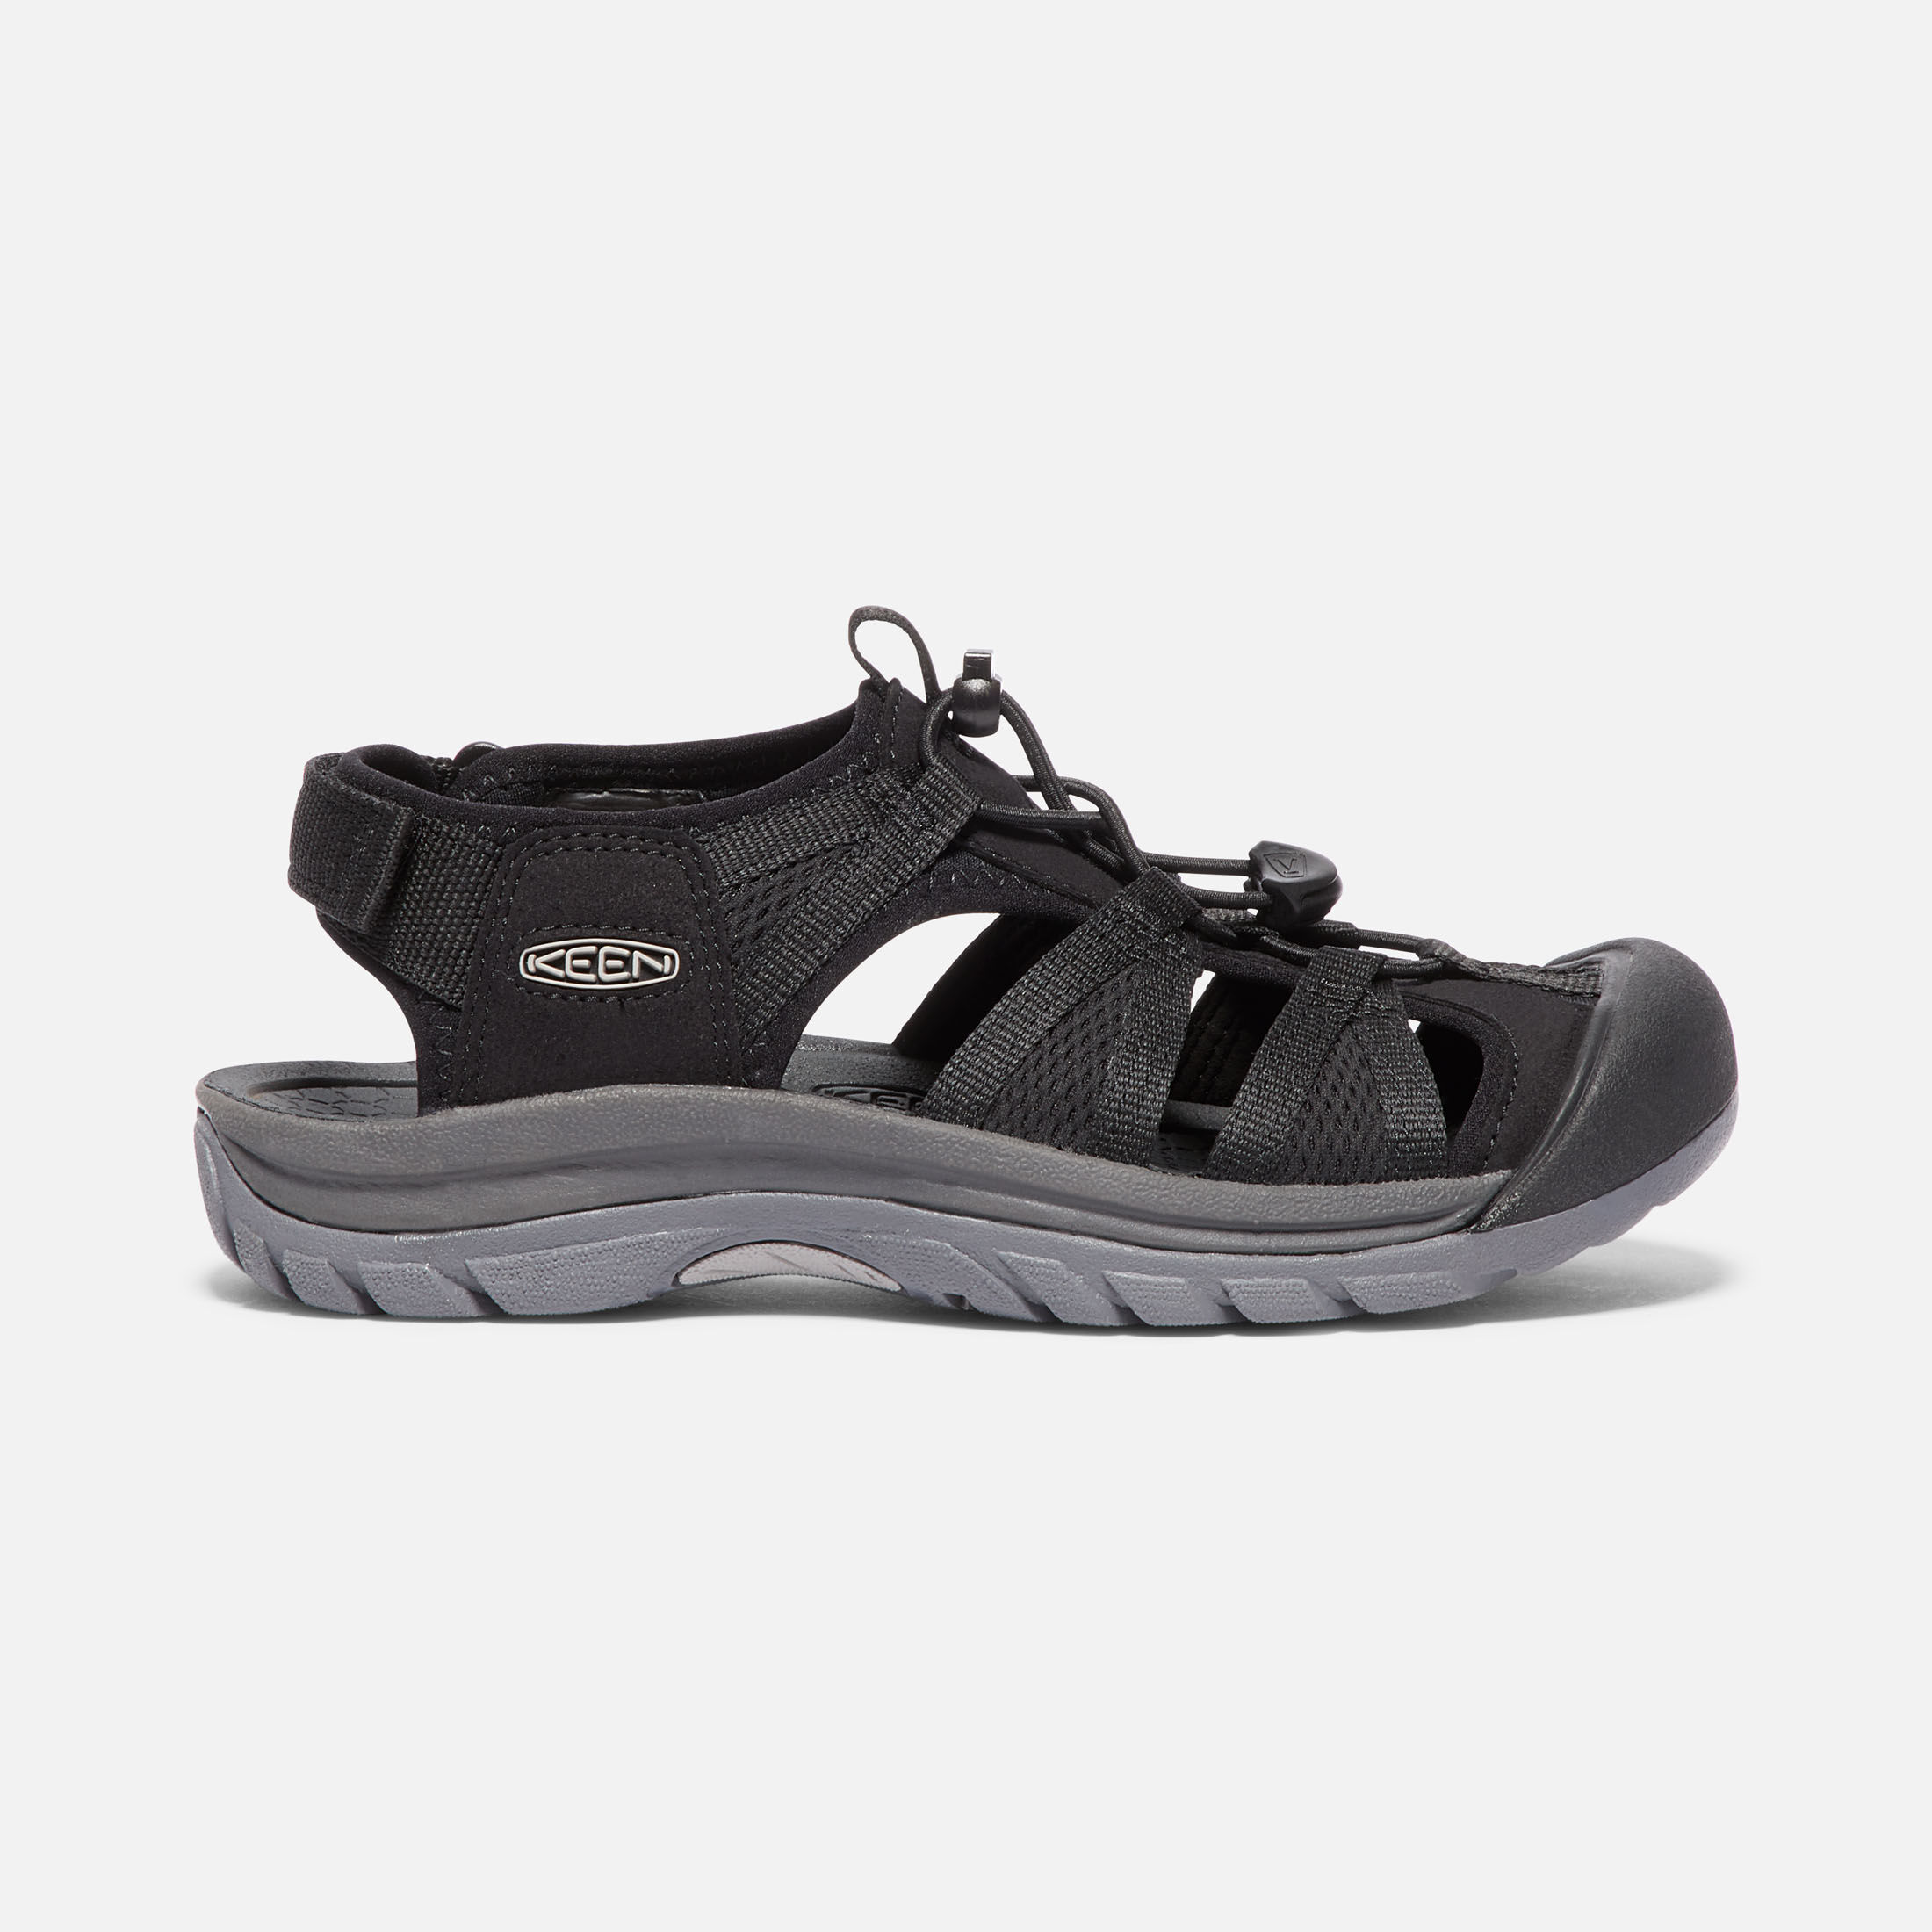 Keen Womens Rialto II Naples Walking Shoes Sandals Brown Sports Outdoors